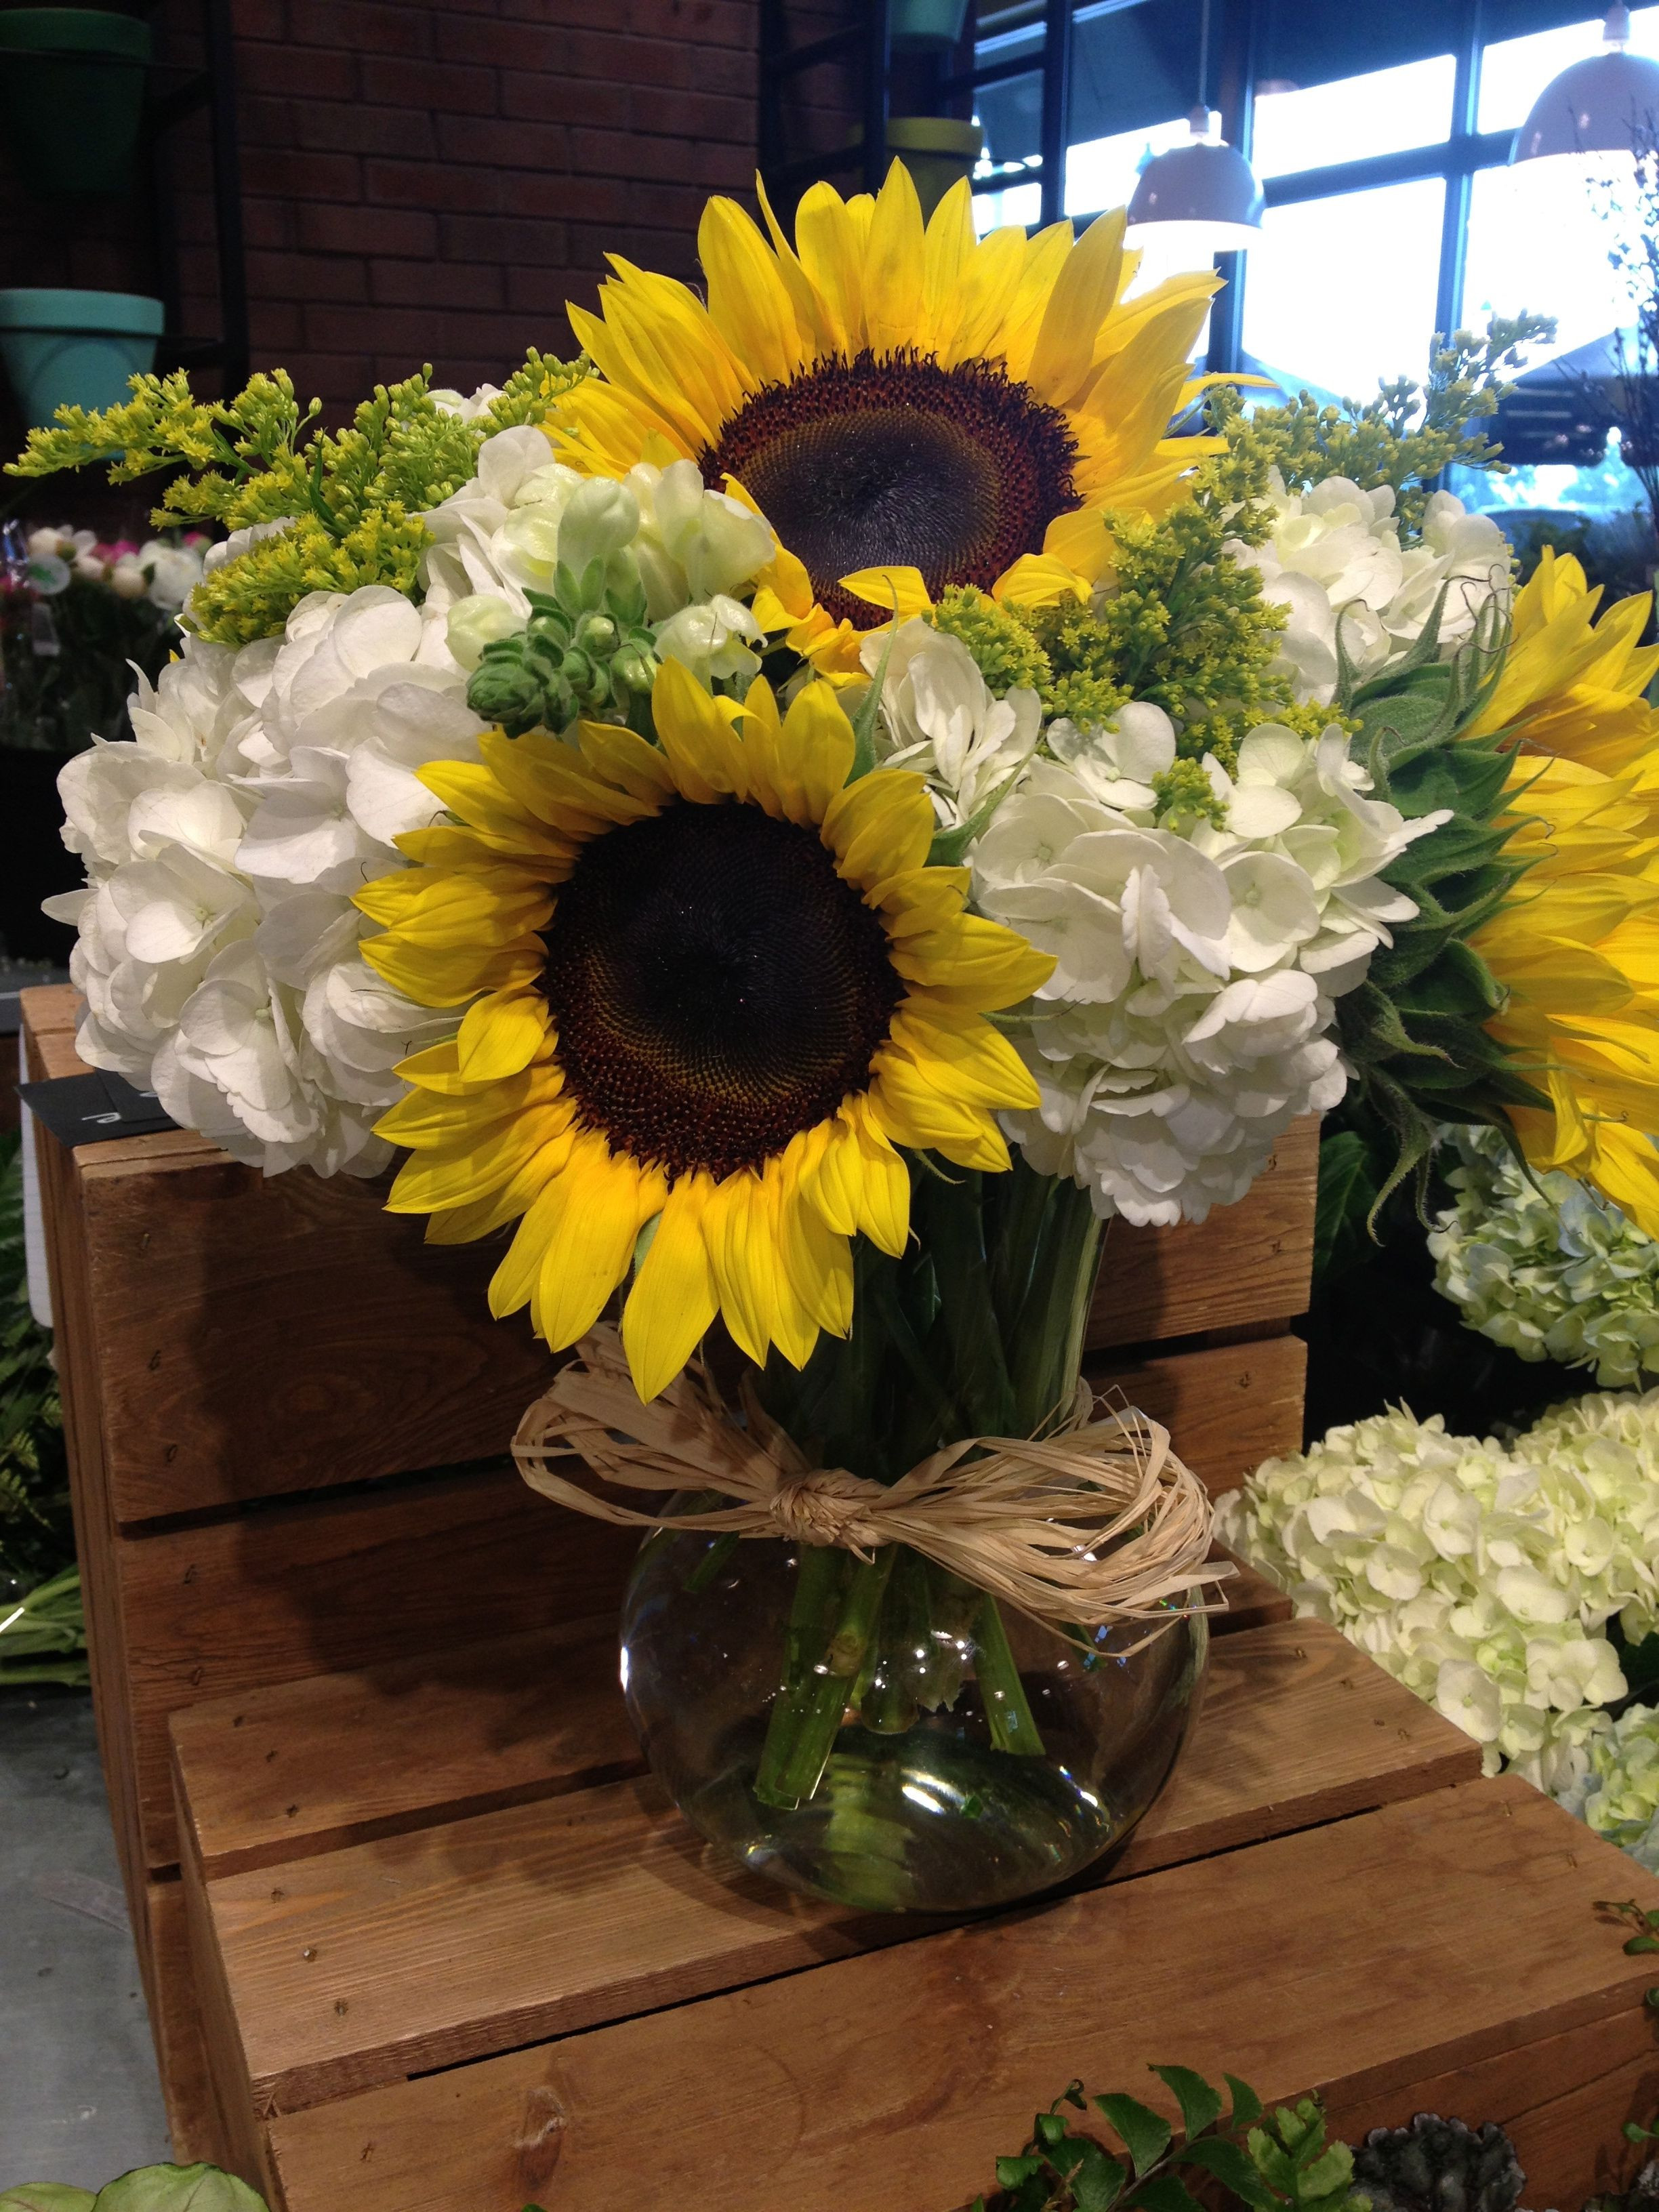 Flower Delivery for Canada Fresh Sunflower and Hydrangea Flower Arrangement Beautiful